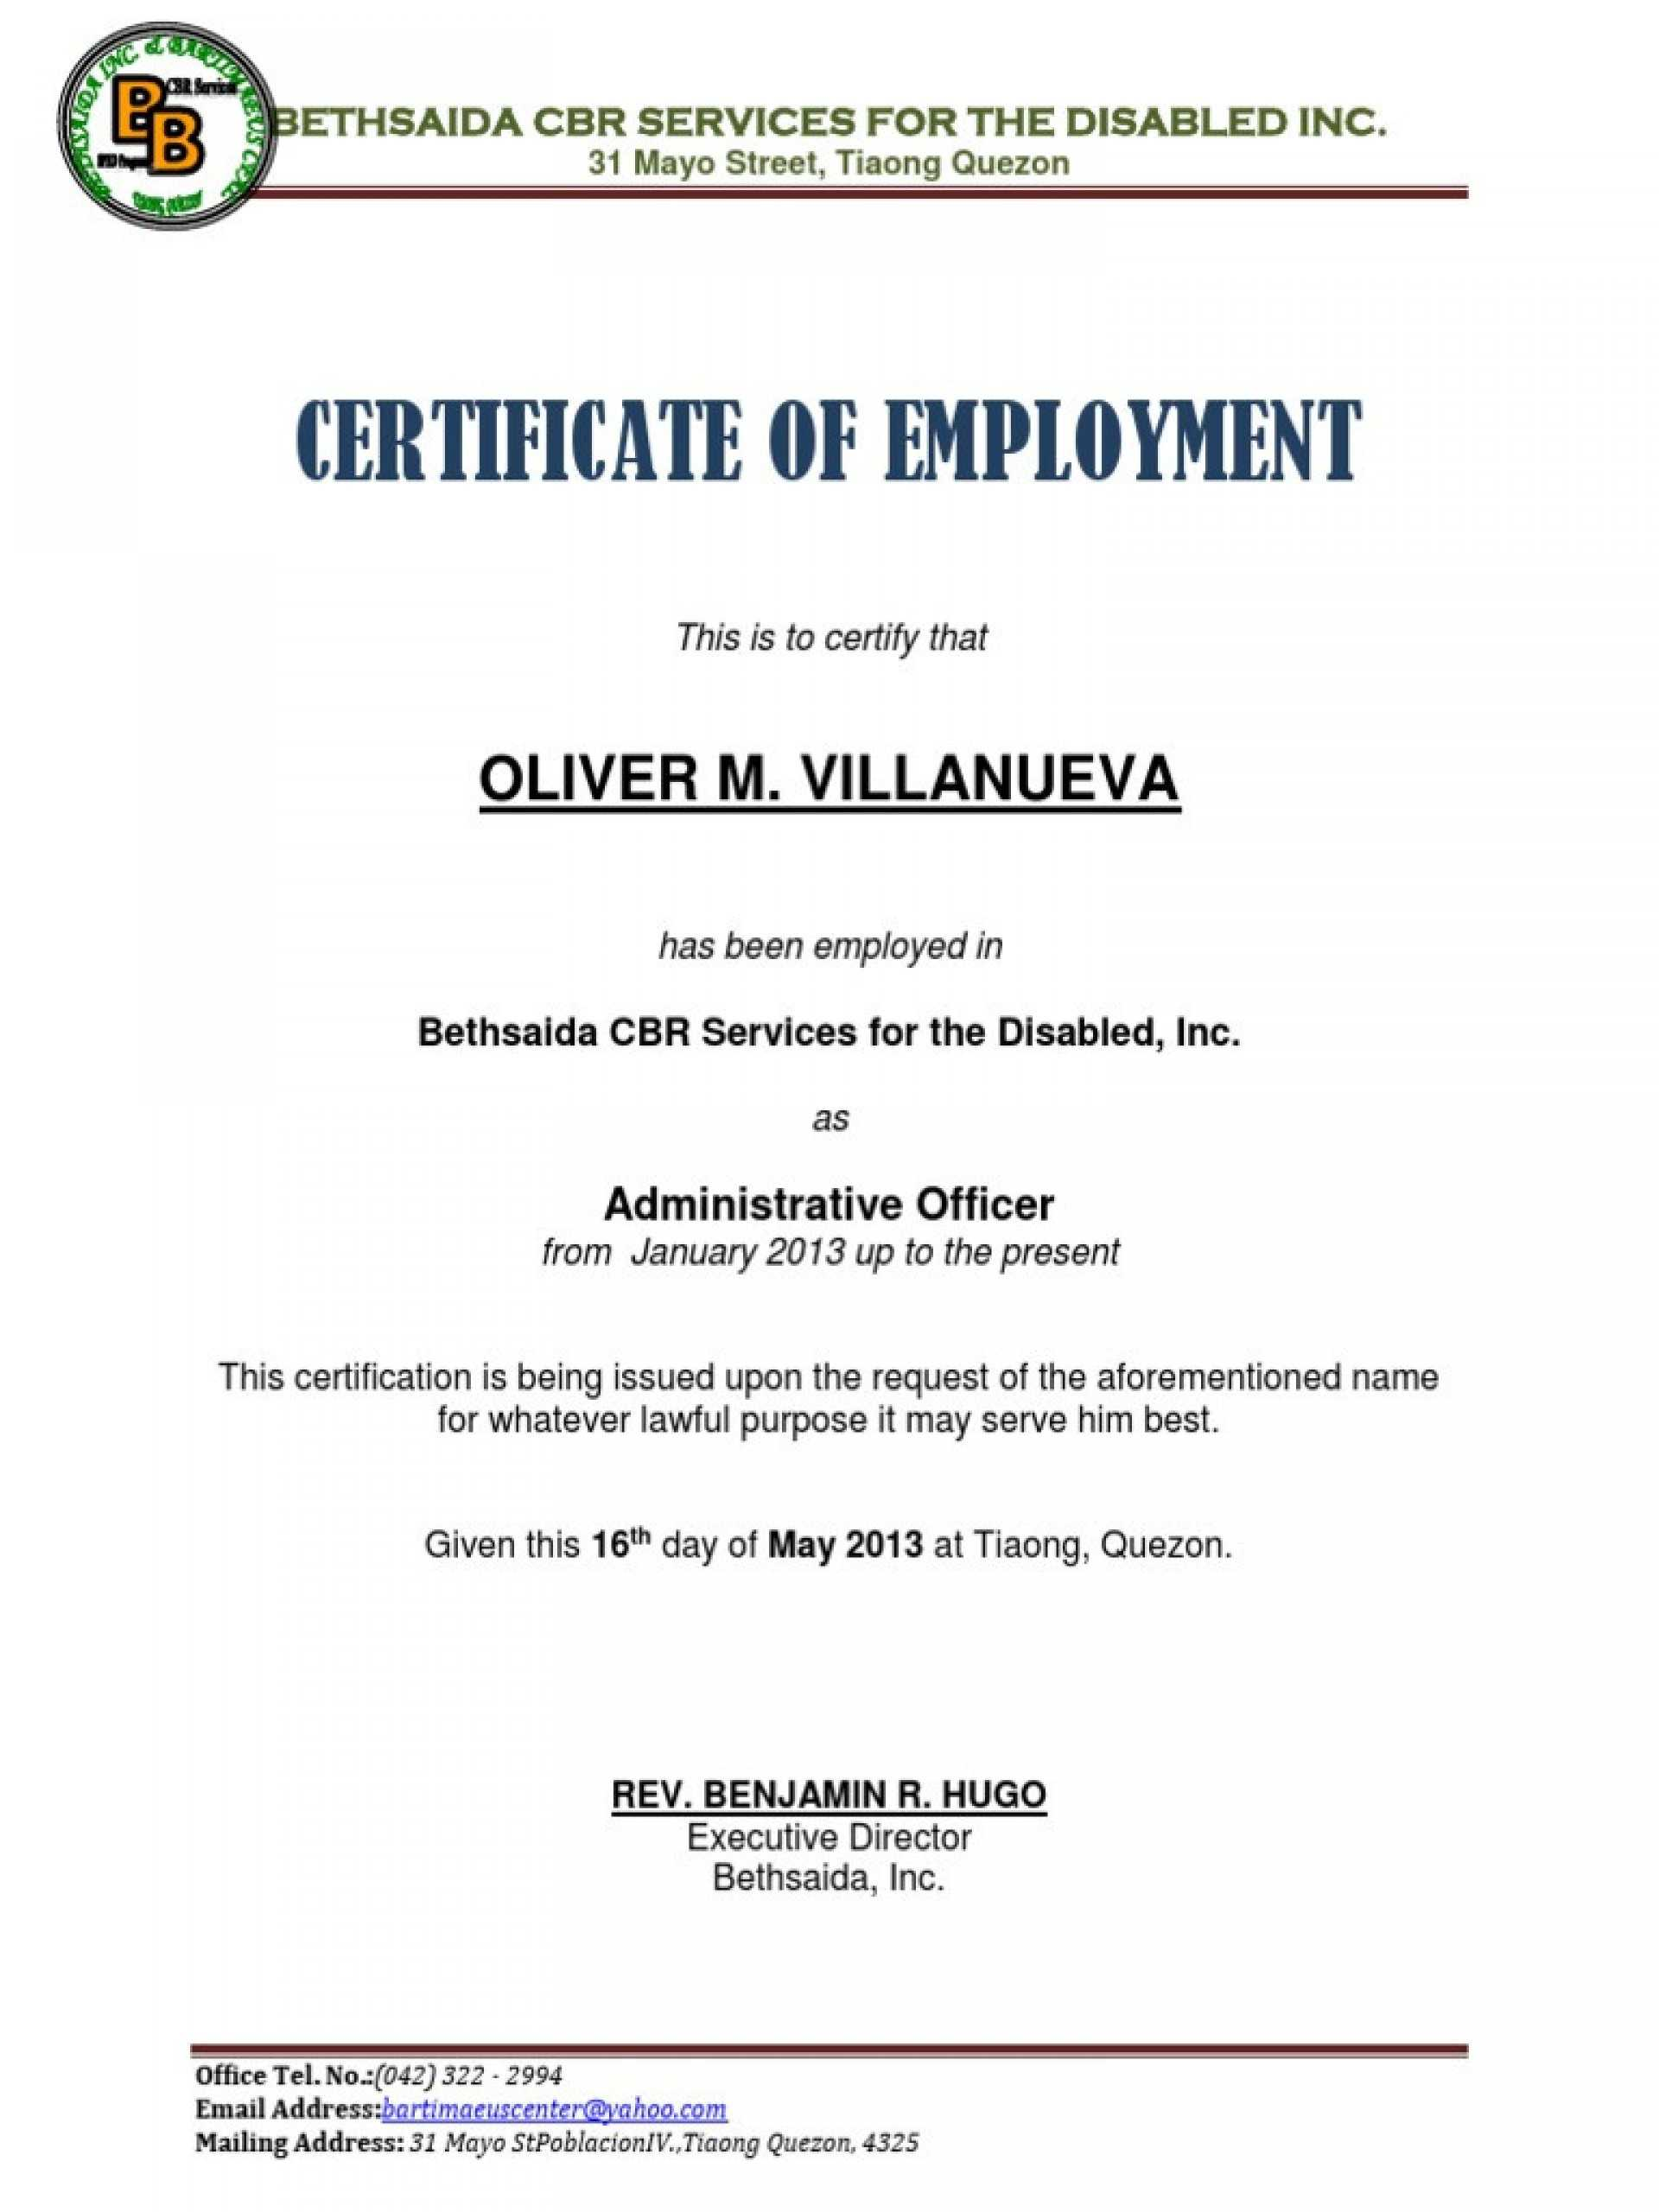 009 Template Ideas Certificate Of Employment Impressive Free For Template Of Certificate Of Employment